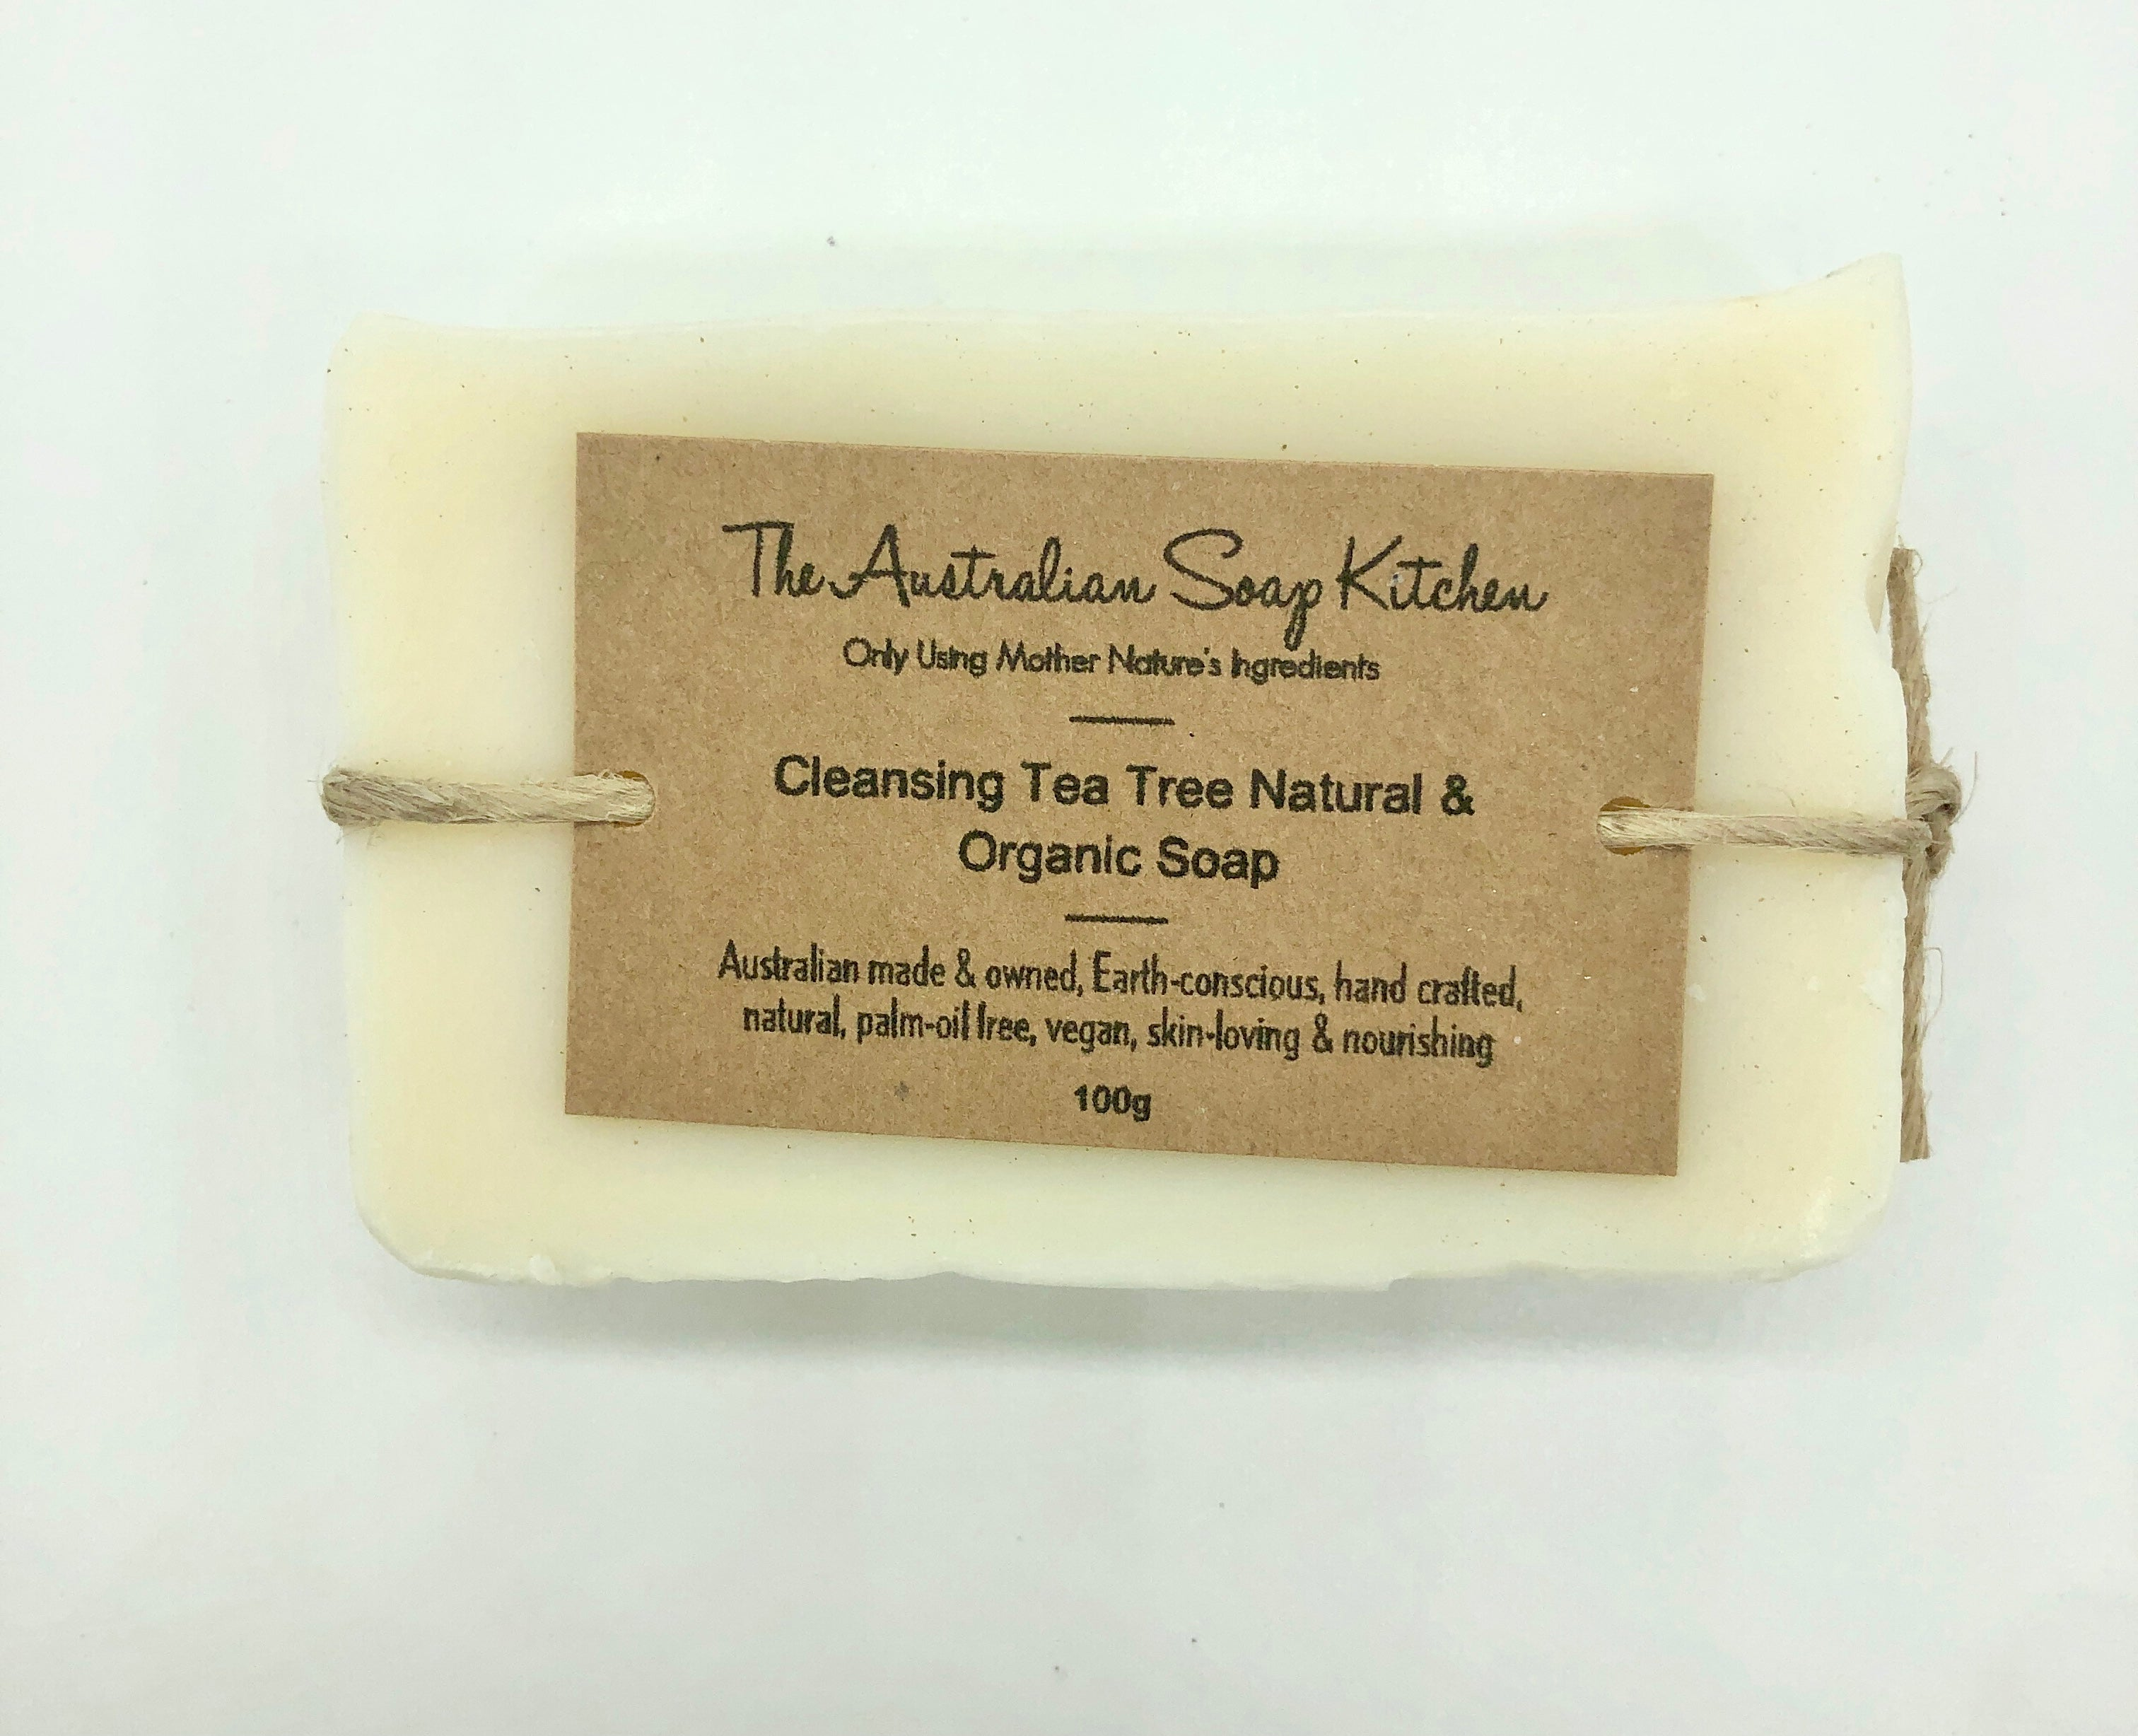 The Australian Soap Kitchen Cleansing Tea Tree Soap